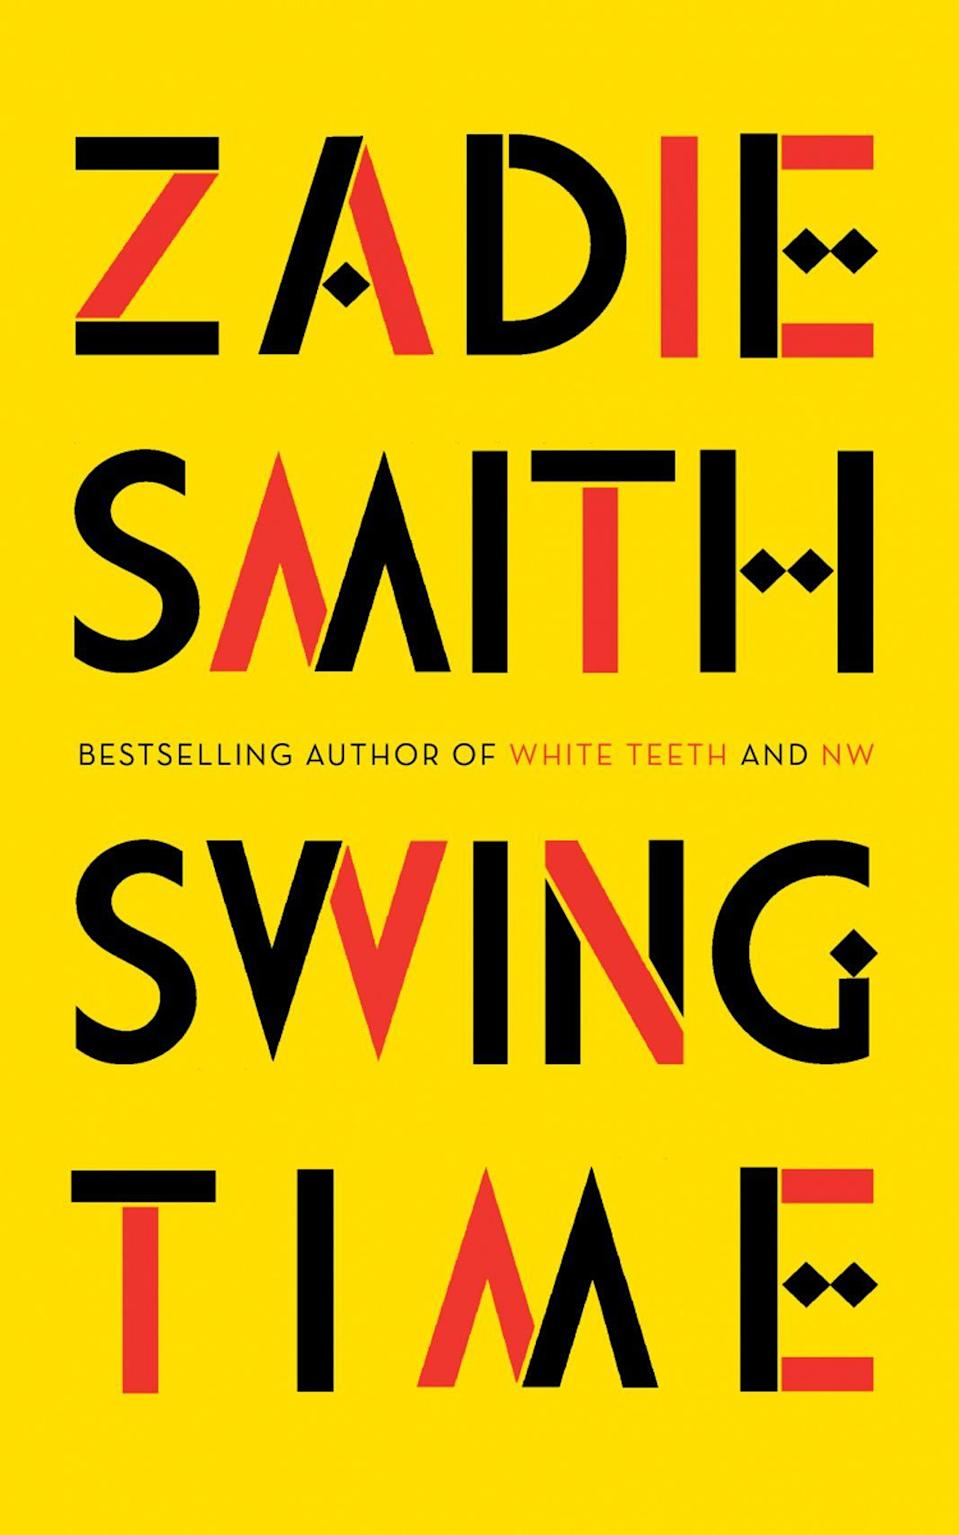 <p><strong><em>Swing Time</em></strong></p><p>By Zadie Smith</p><p>Two Black girls want to be dancers when they grow up – but only one of them has the talent to push that dream forward. Though they remain inextricably bound to one another, their friendship ends abruptly in their 20s.</p><p>Tracey manages to become a dancer, making it into the chorus line. But her life is a struggle, as well as a kind of arrested development. Her former friend goes on to become an assistant to a famous pop star, leaving her old life behind. But when a twist of fate sends them both to west Africa, the two women are thrown together once again.</p>